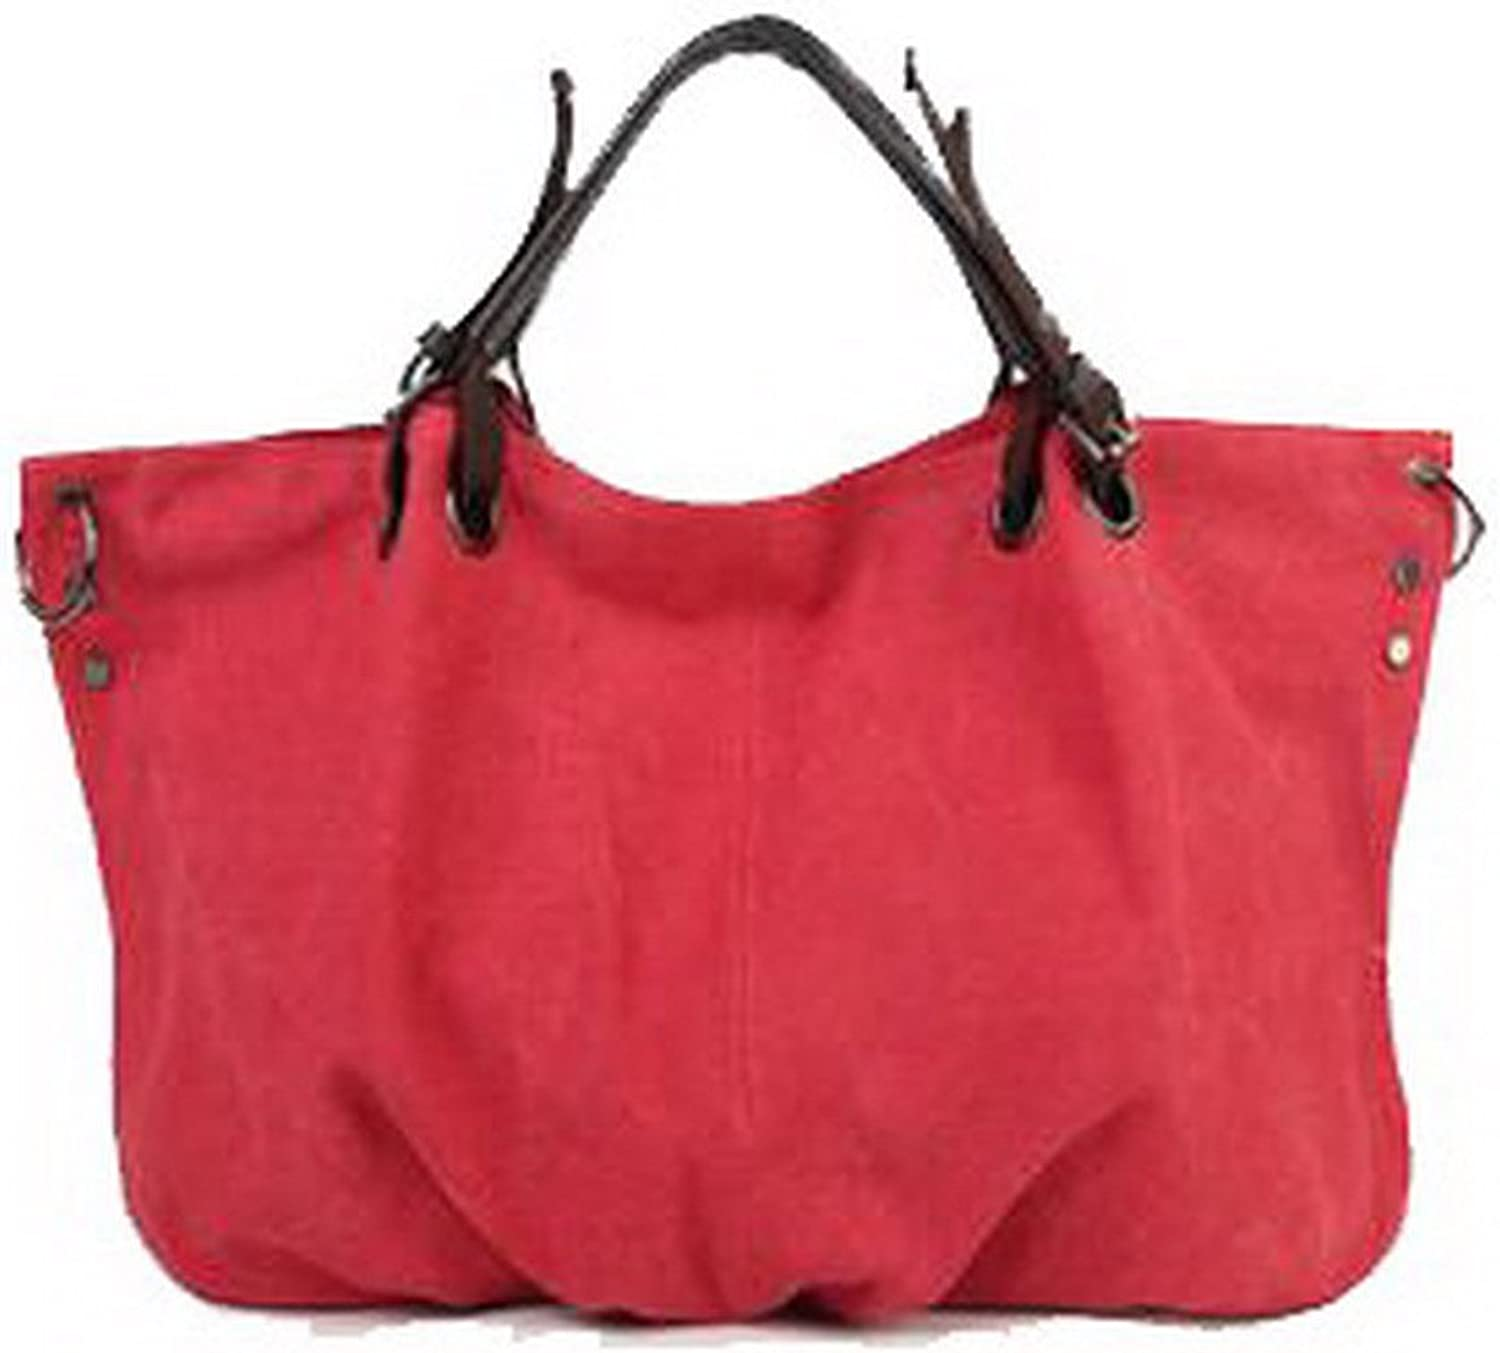 AmoonyFashion Women's Casual ToteStyle Canvas Satchel Picnic Shoulder Bags, BUTBS181476